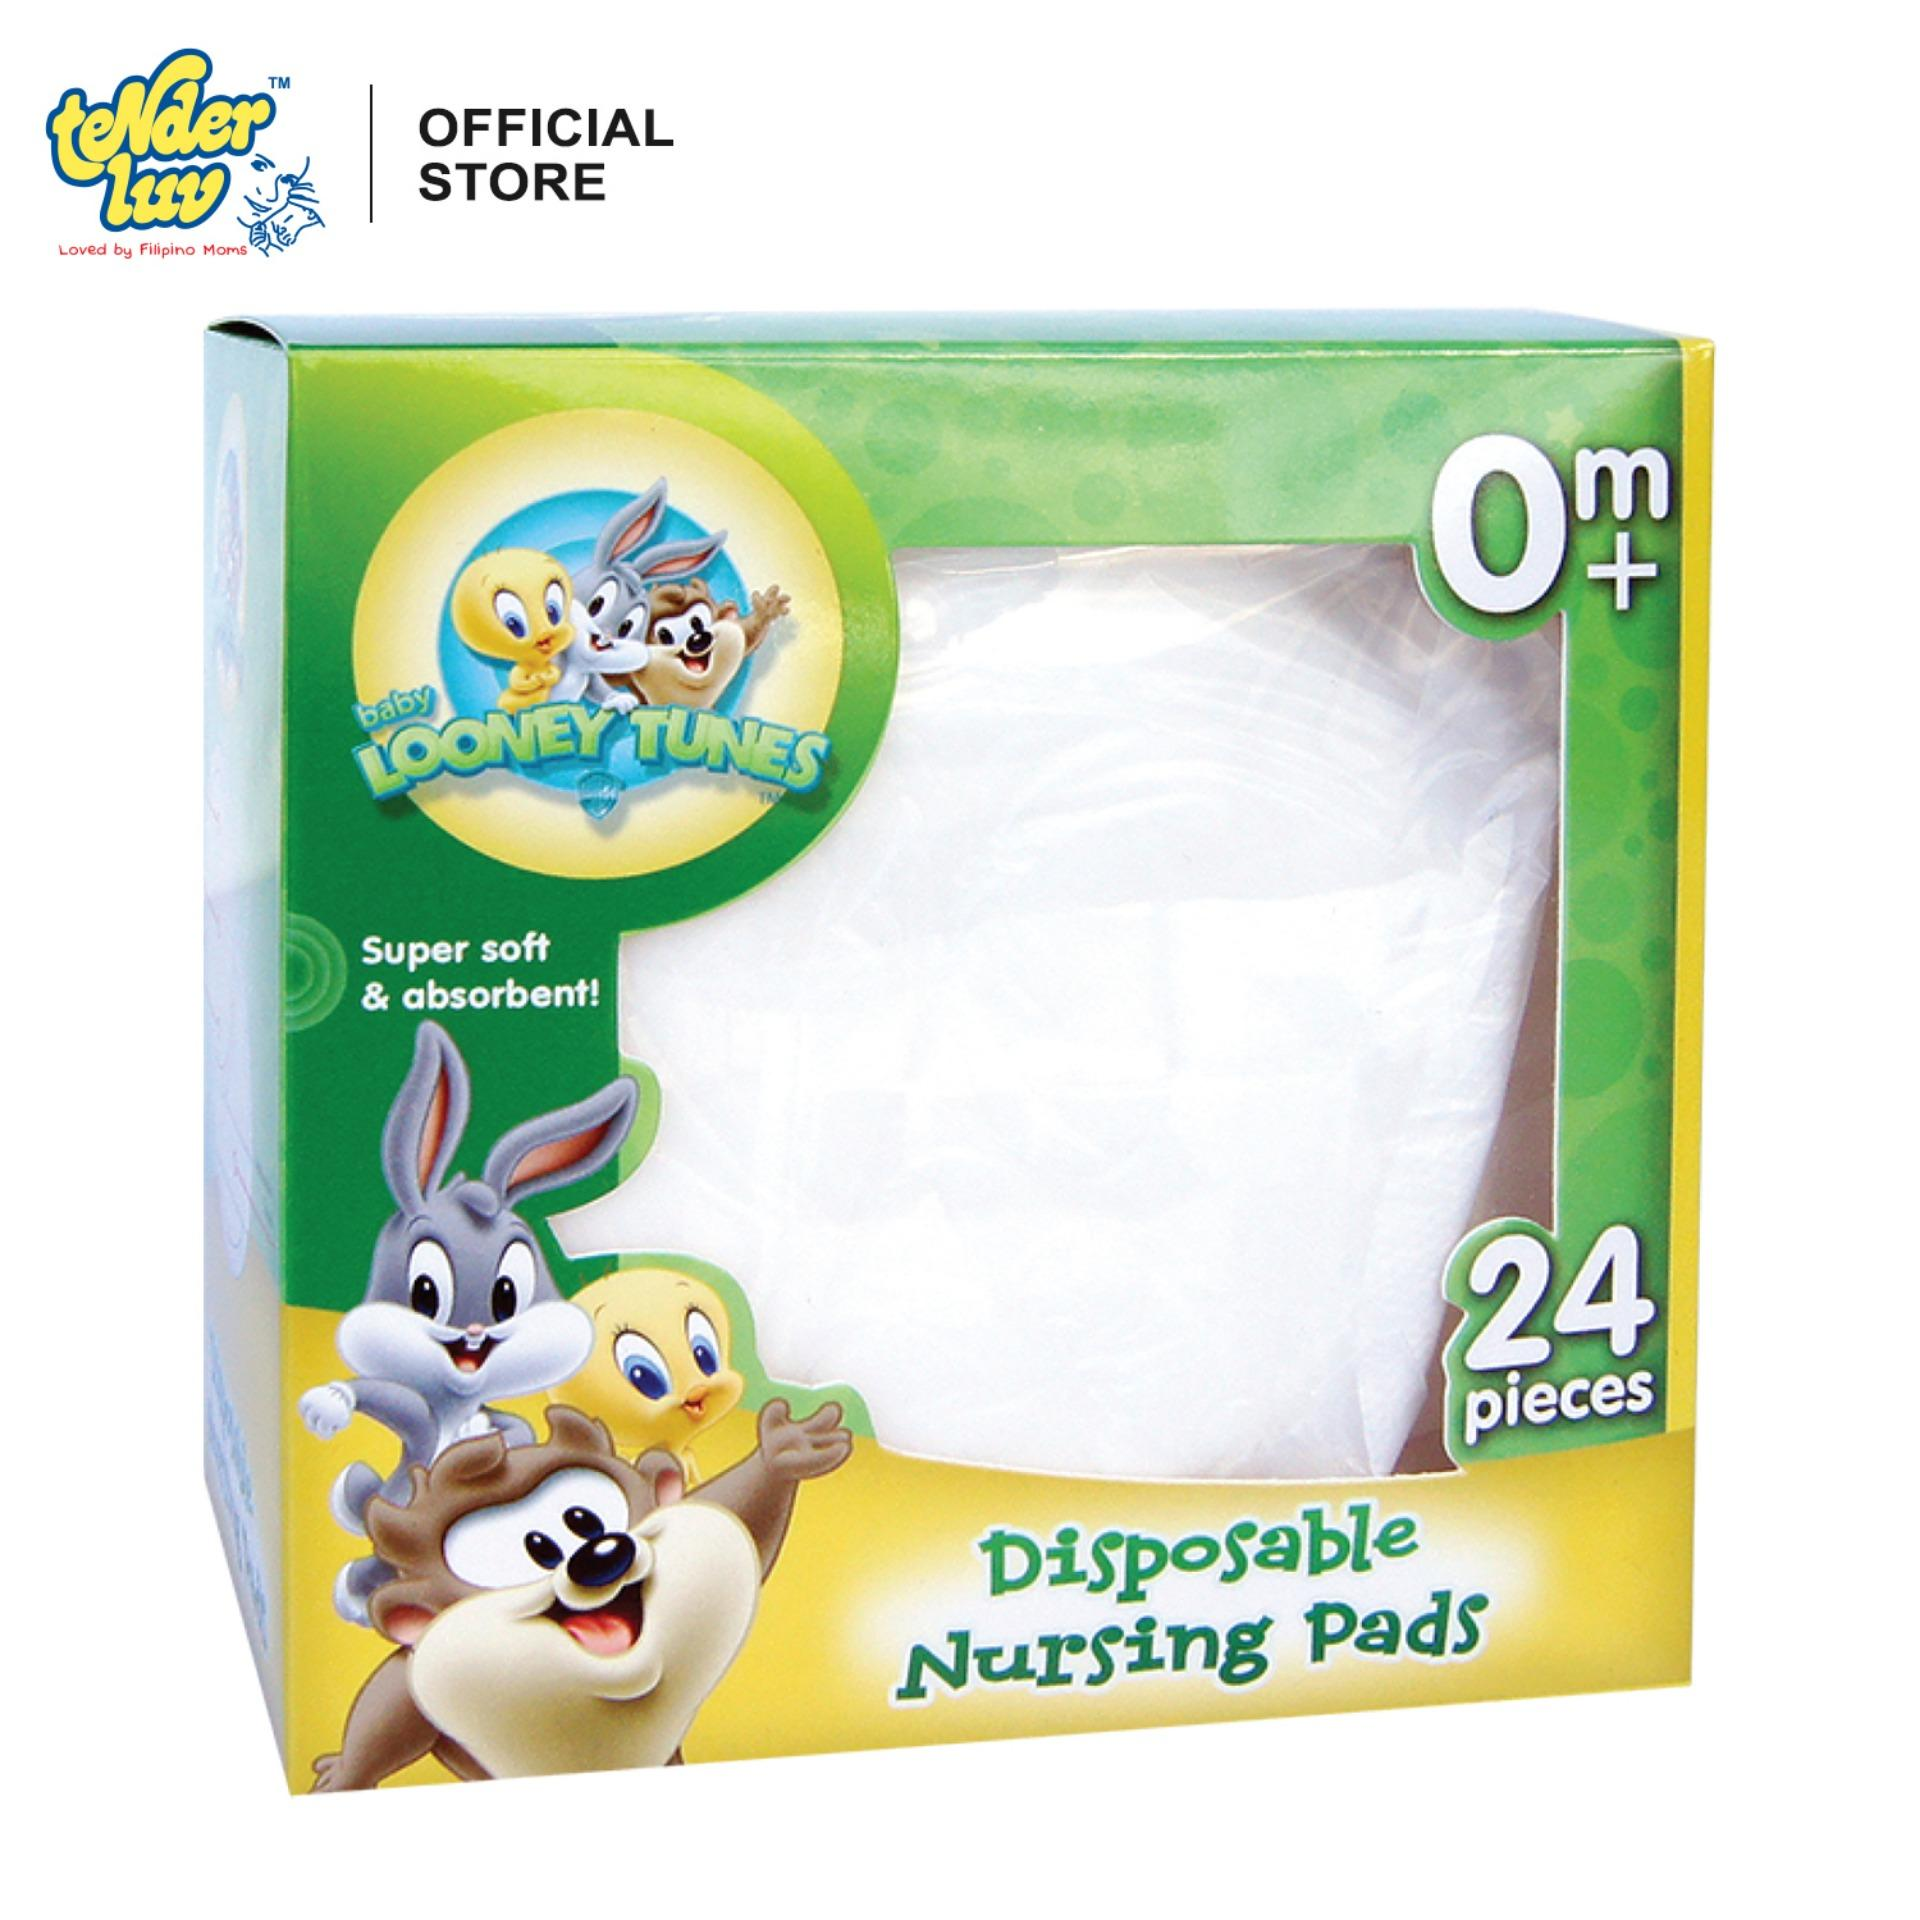 Nipple Shield For Sale Breast Online Brands Prices Pigeon Silicone L 2pcs Looney Tunes 24 Pc Disposable Nursing Pads